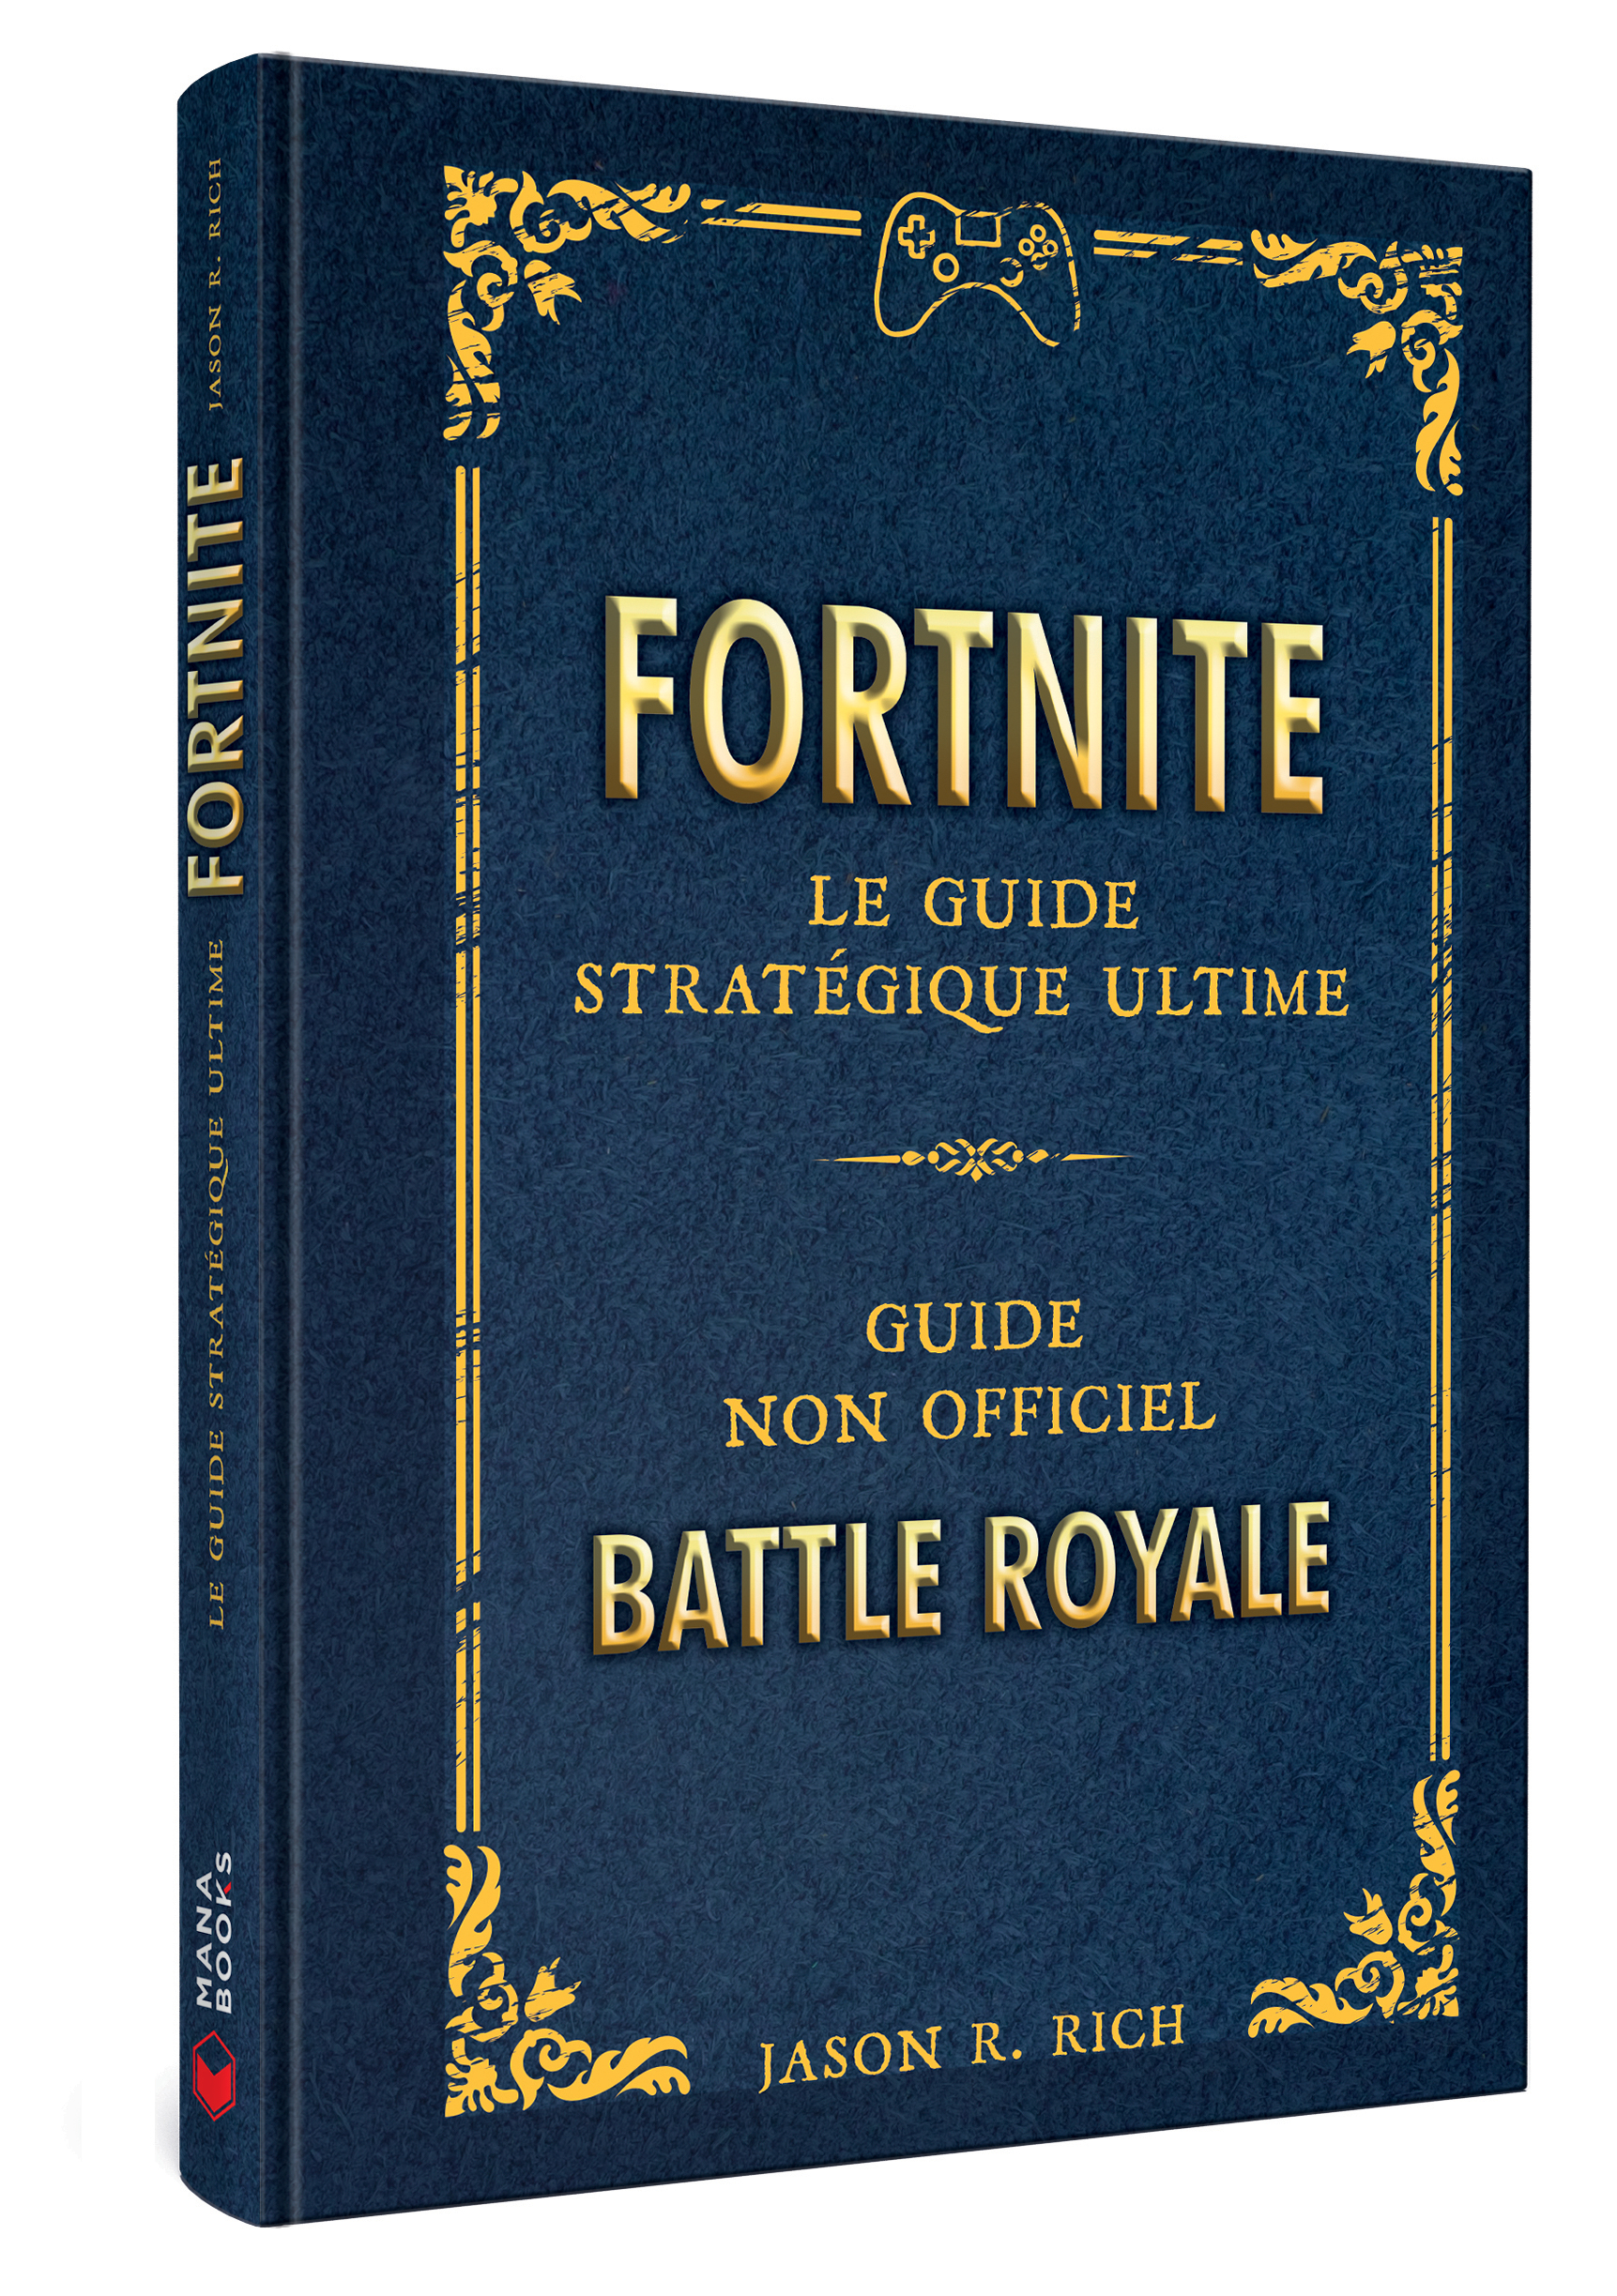 Fortnite Fortnite Le Guide Strategique Ultime Mana Books